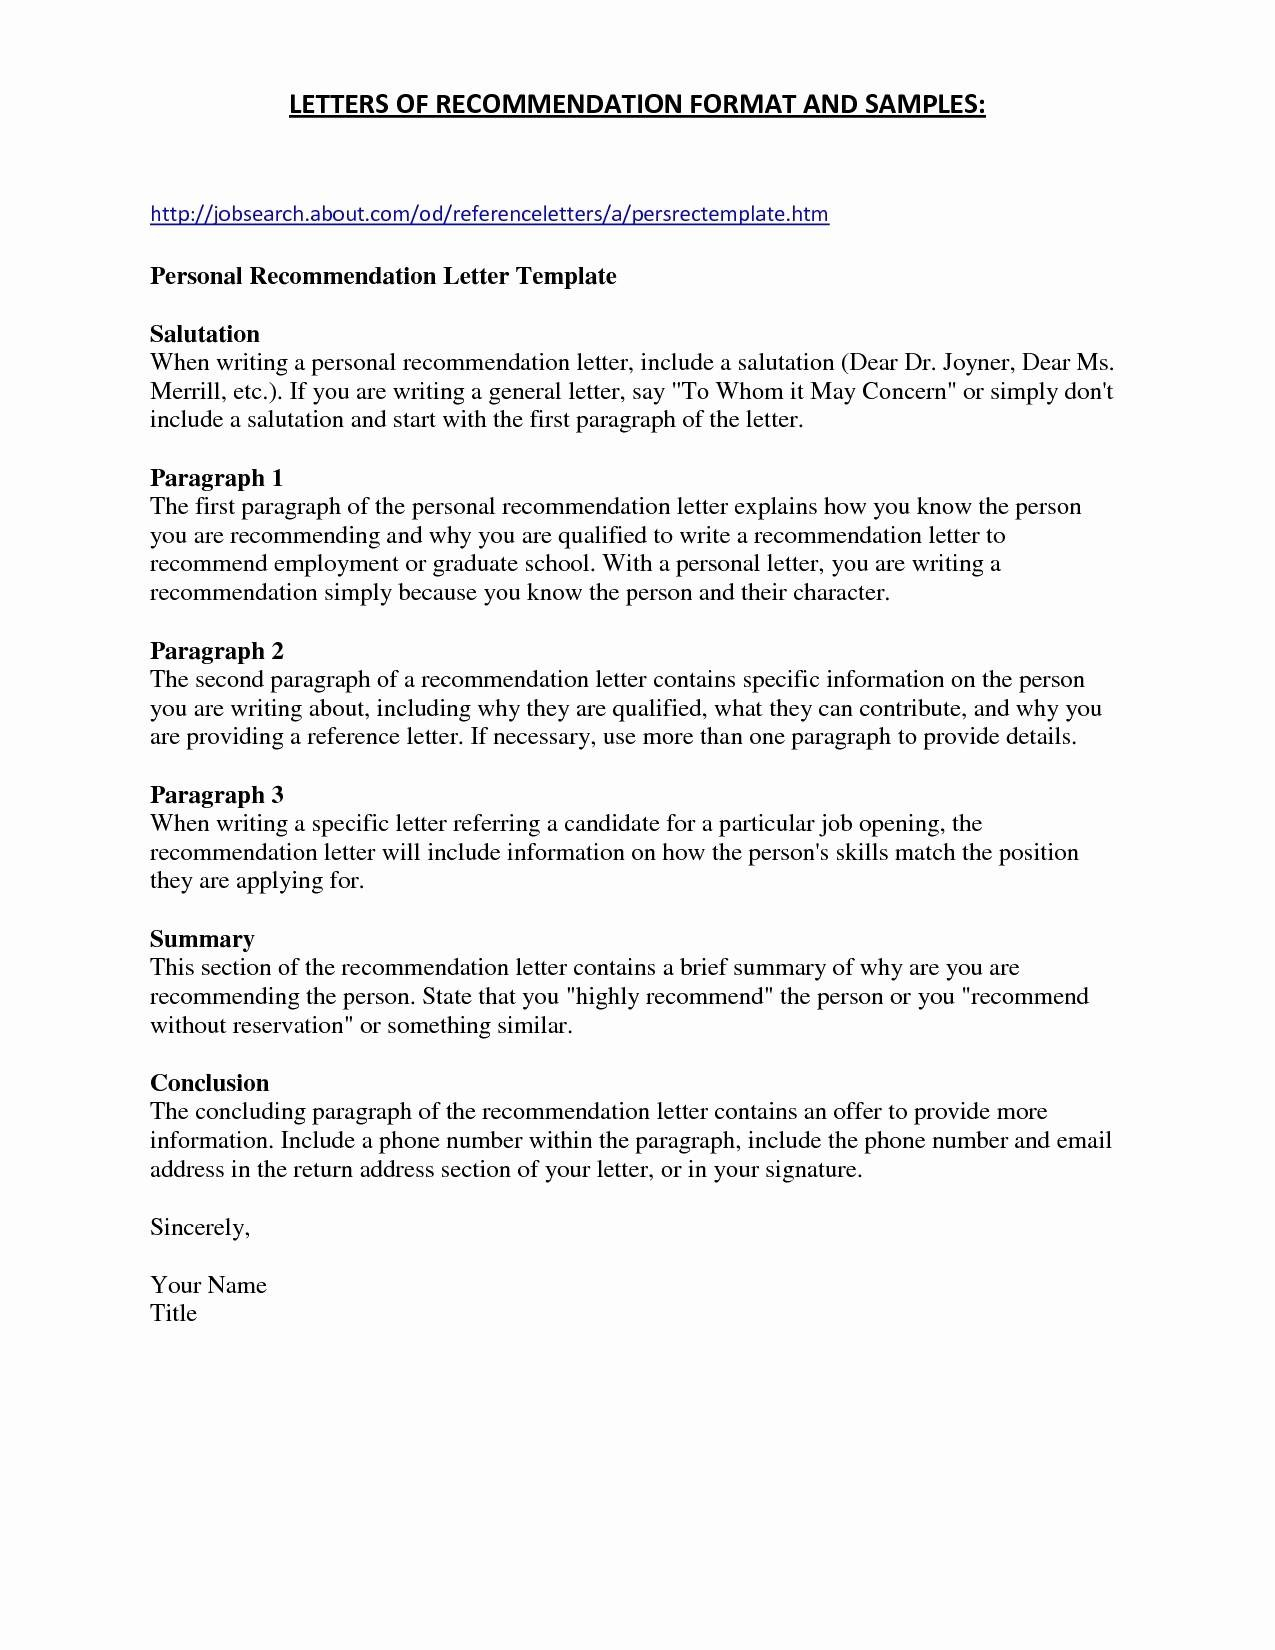 Rental Cover Letter Template - How to Write A Cover Letter for A Rental Application